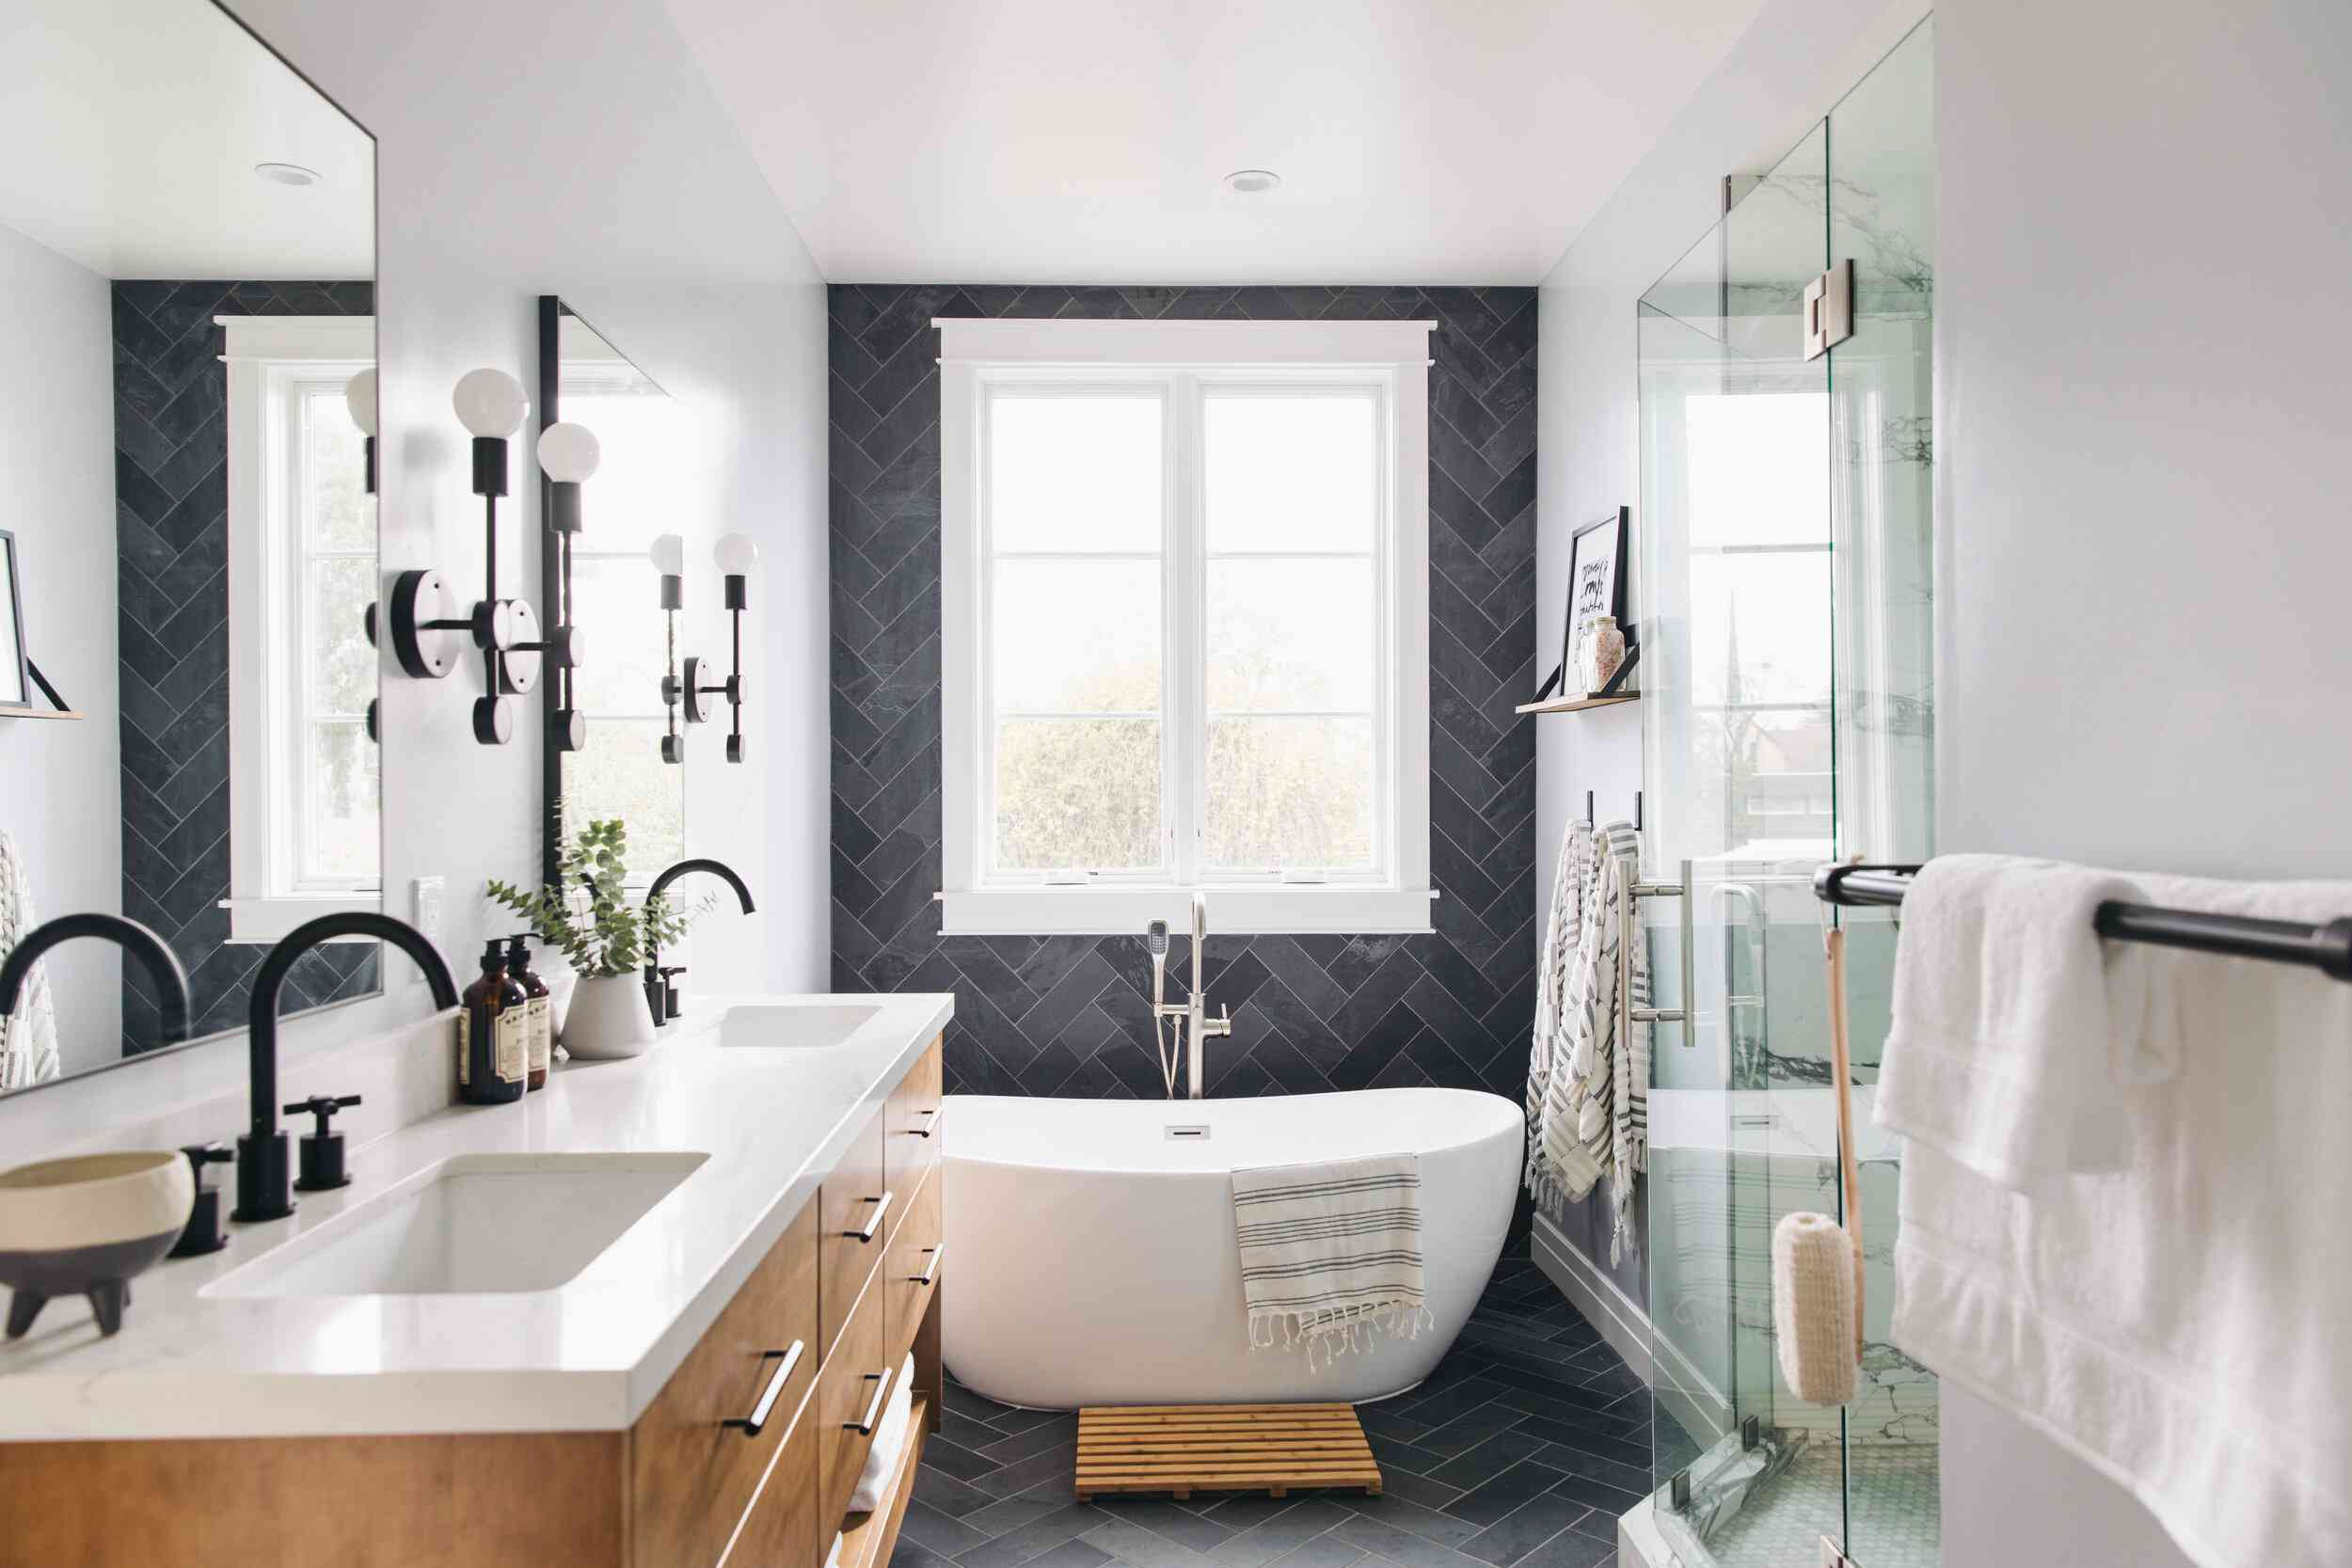 A full bathroom lined with slate gray tiles